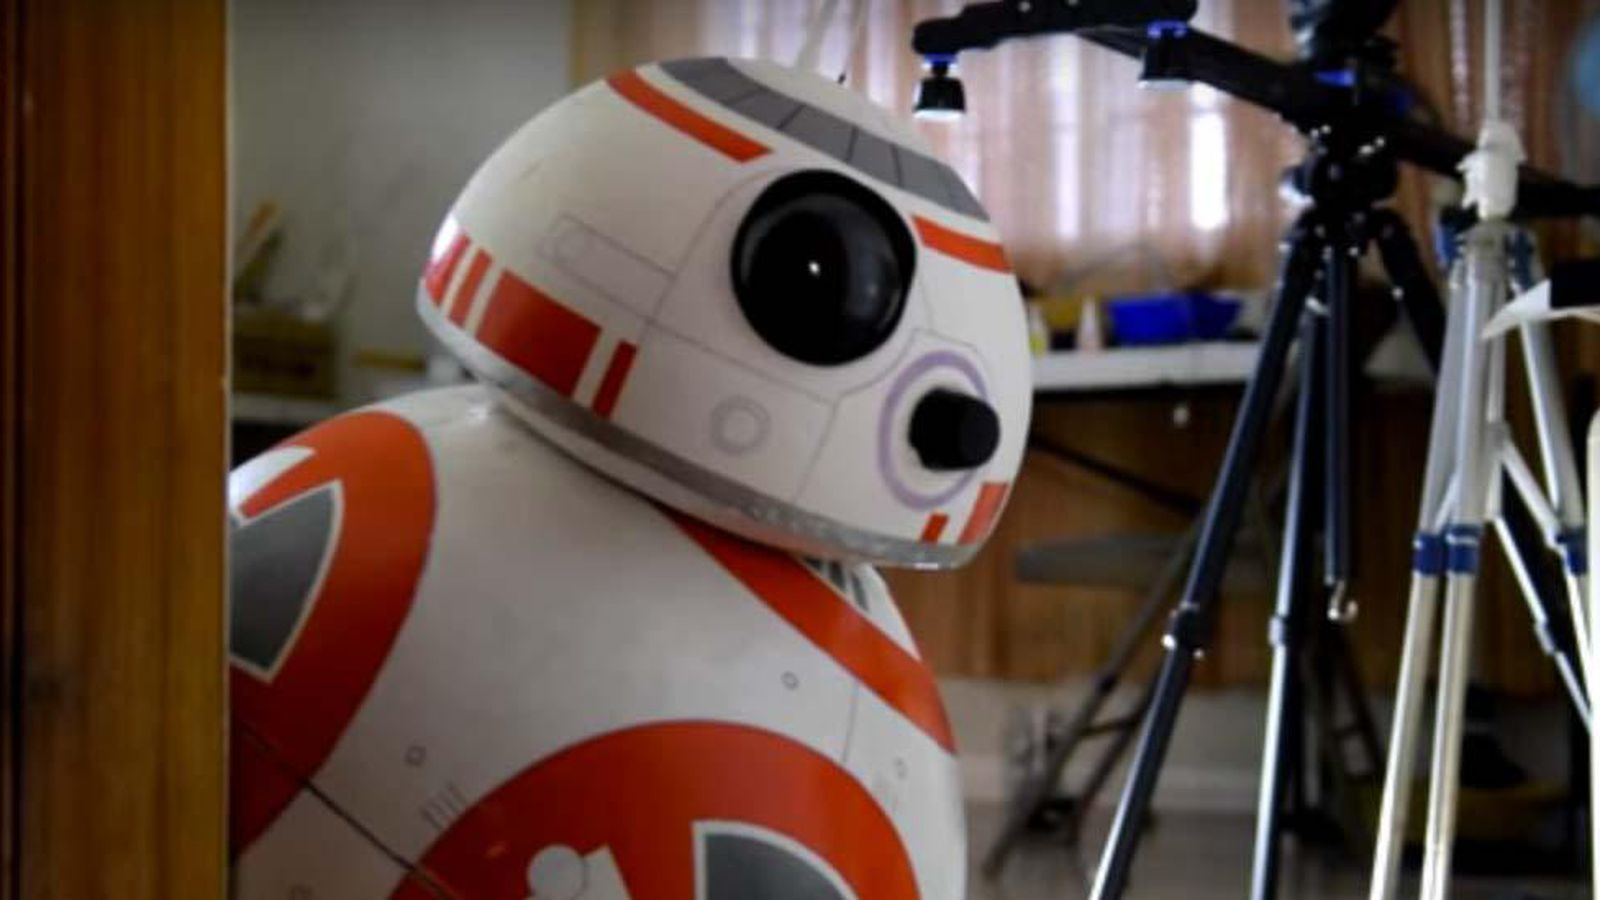 Make your own life-size BB-8 droid for $120 - The Verge